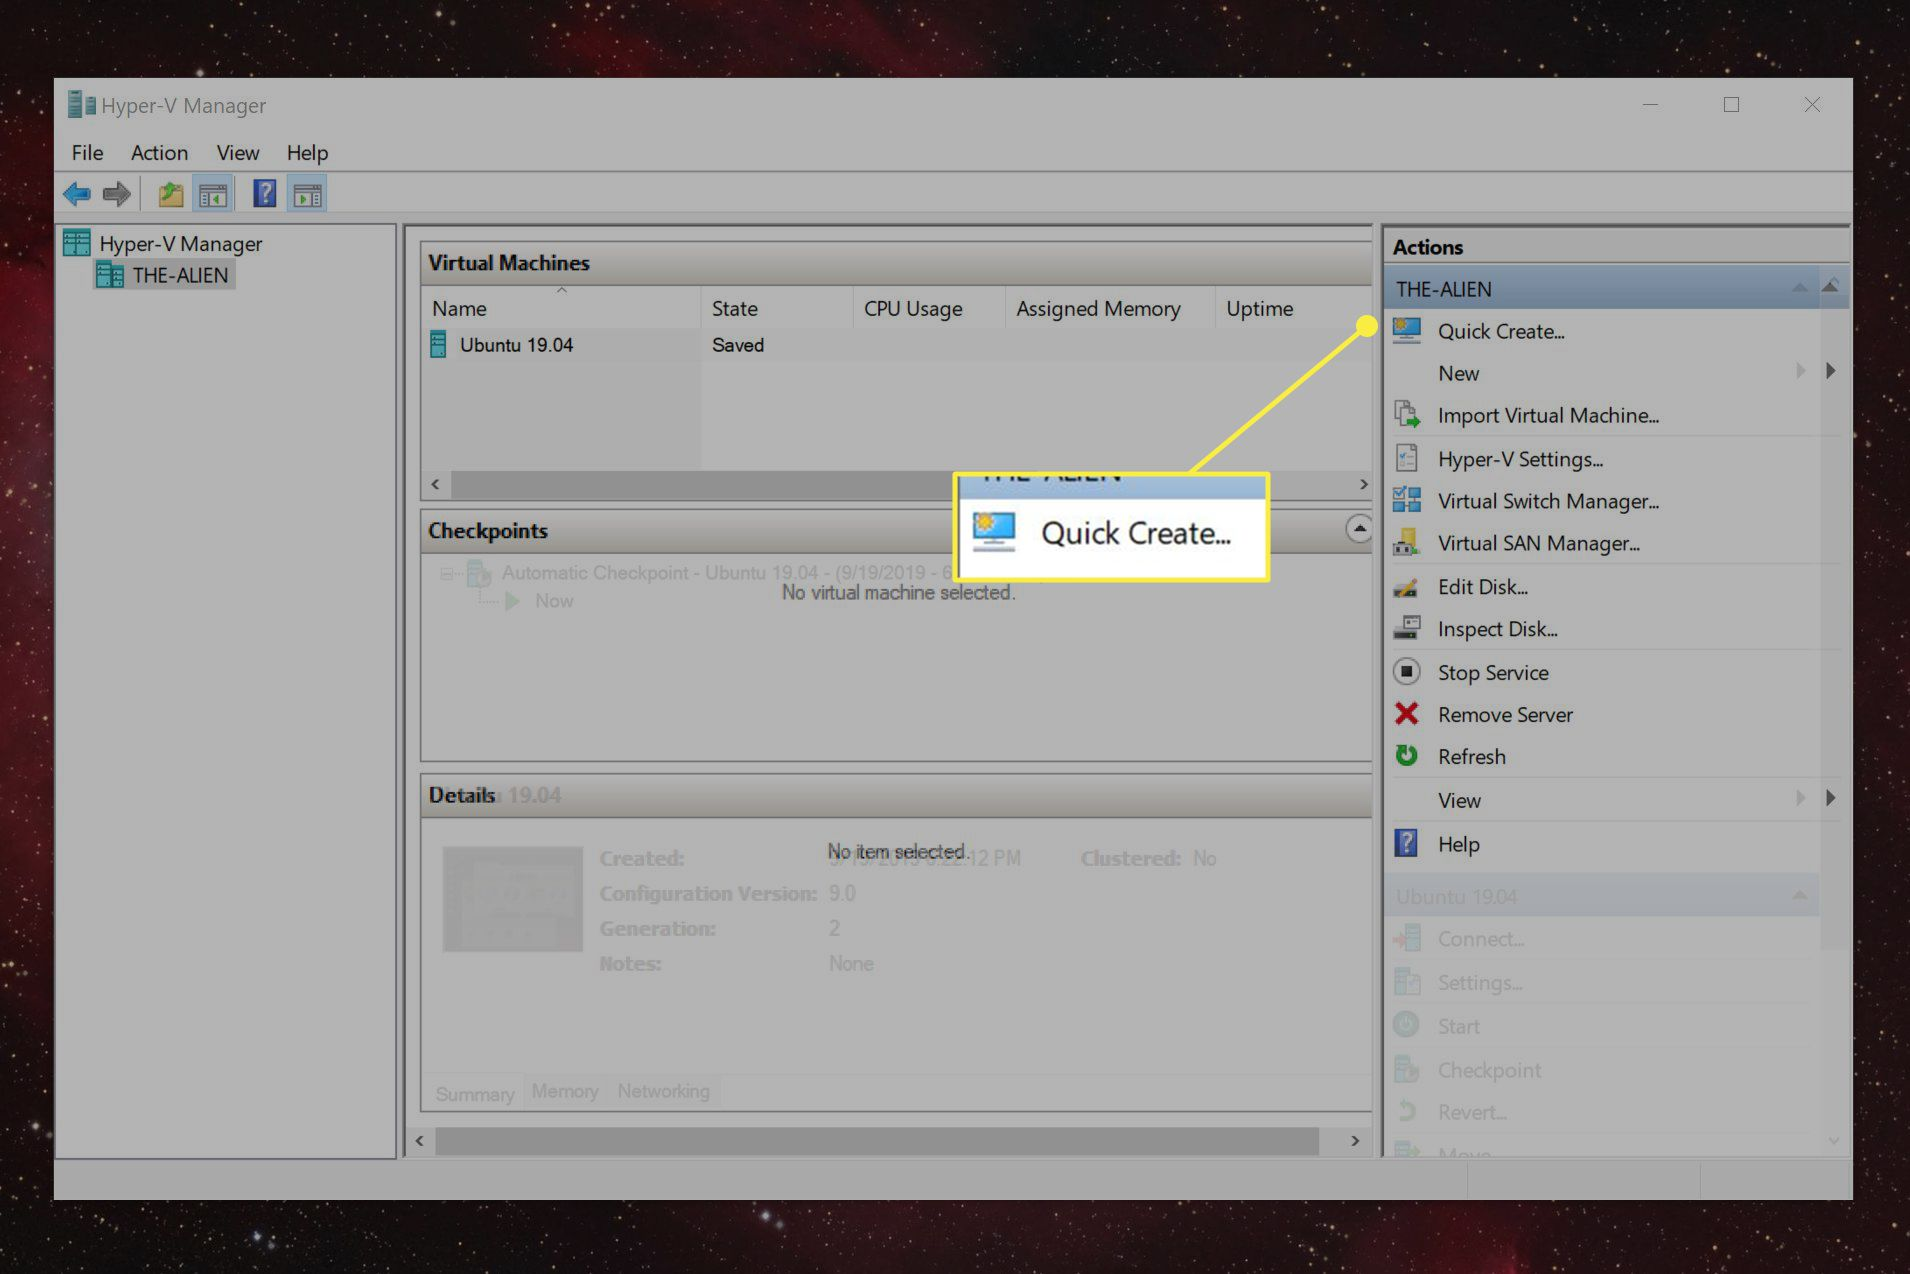 The Quick Create action in Hyper-V Manager